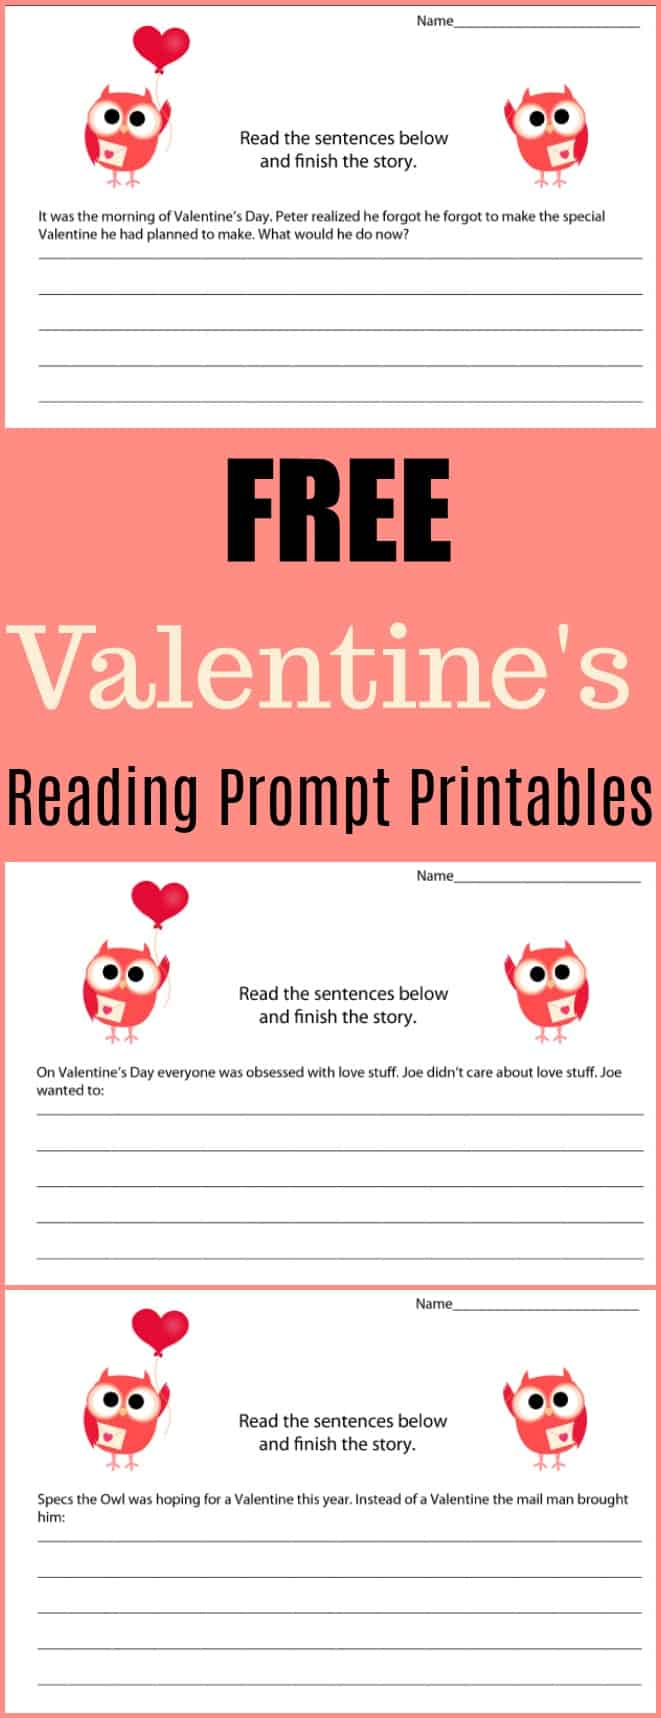 Free Valentine's Writing Prompt Printables #writing #writingprompt #holiday #printable #freeprintable #education #edchat #homeschool #homeschooling #valentinesday